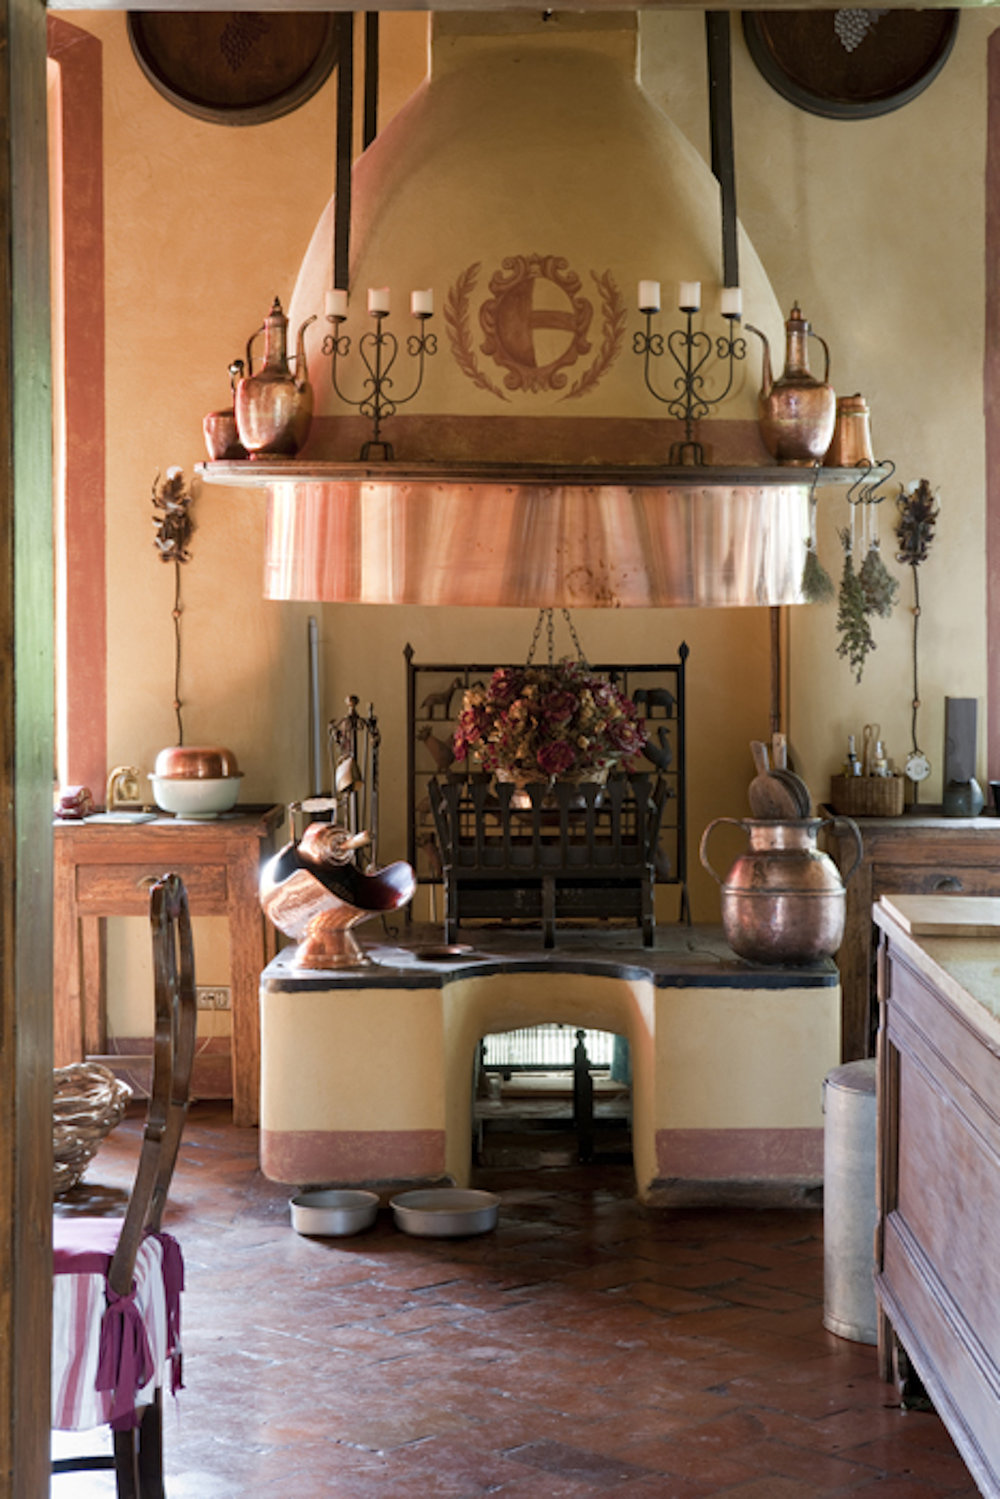 Learn to make regional specialties during customized cooking lessons in the Villa kitchen.